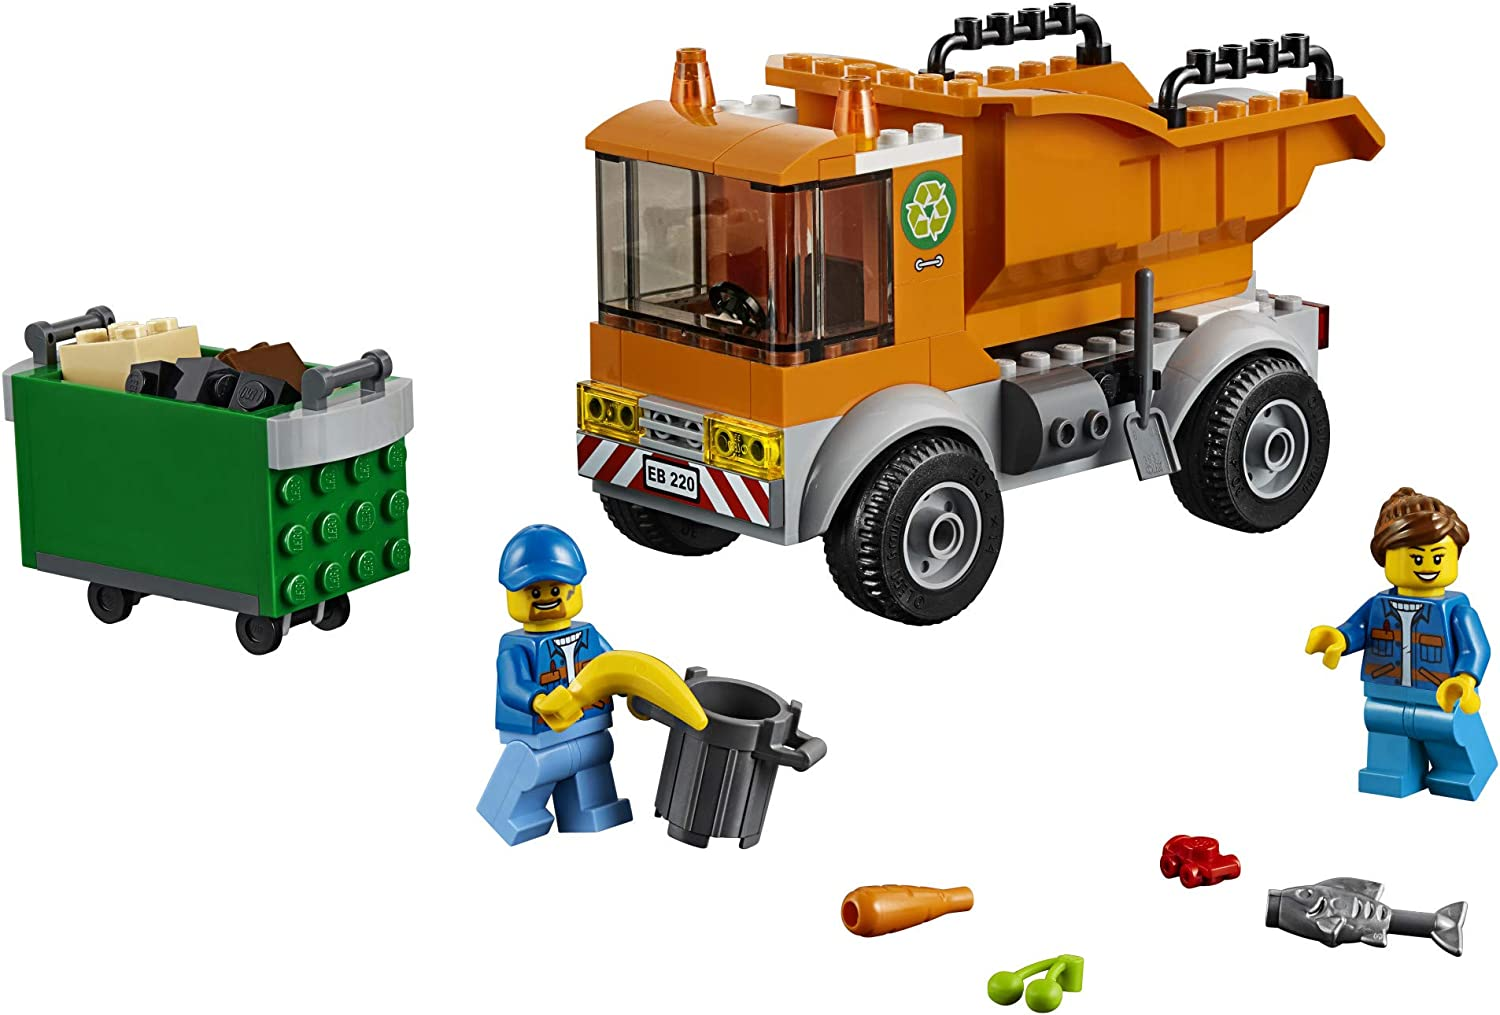 LEGO City Great Vehicles Garbage Truck 60220 Building Kit 90 Pieces